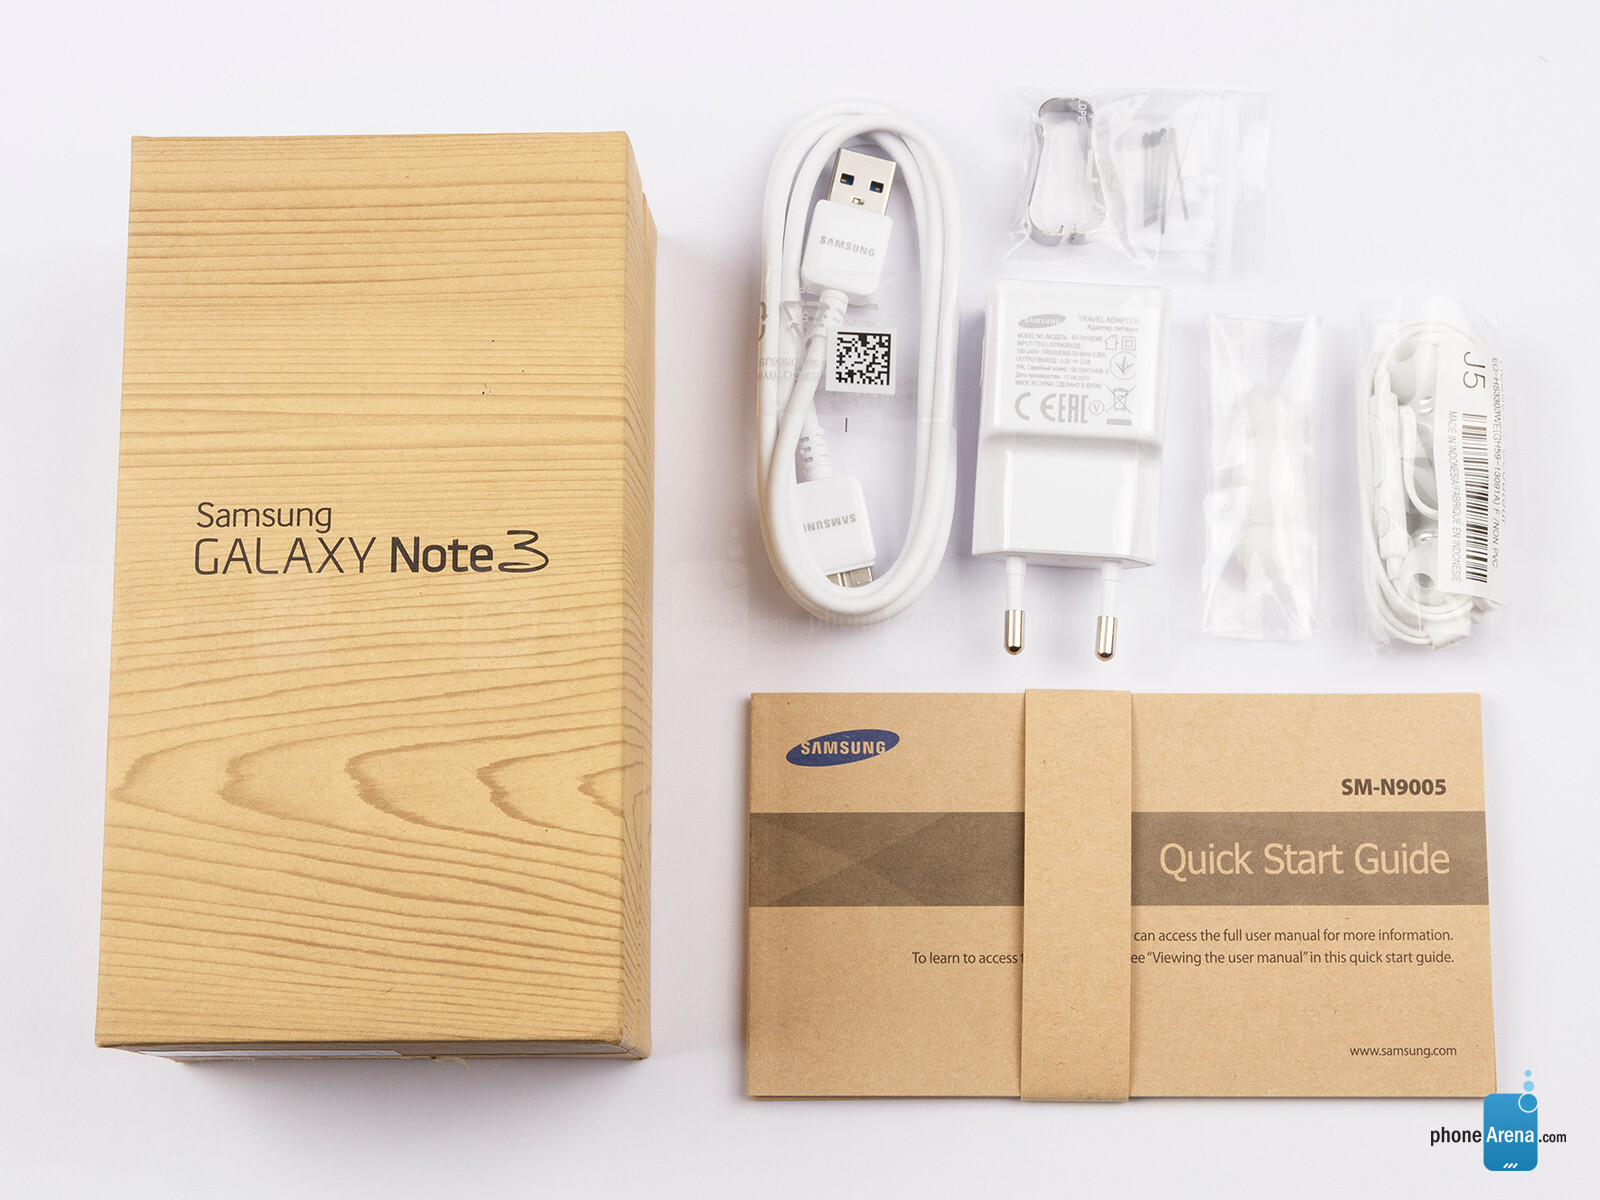 http://i-cdn.phonearena.com/images/reviews/139879-image/Samsung-Galaxy-Note-3-Preview-001-box.jpg